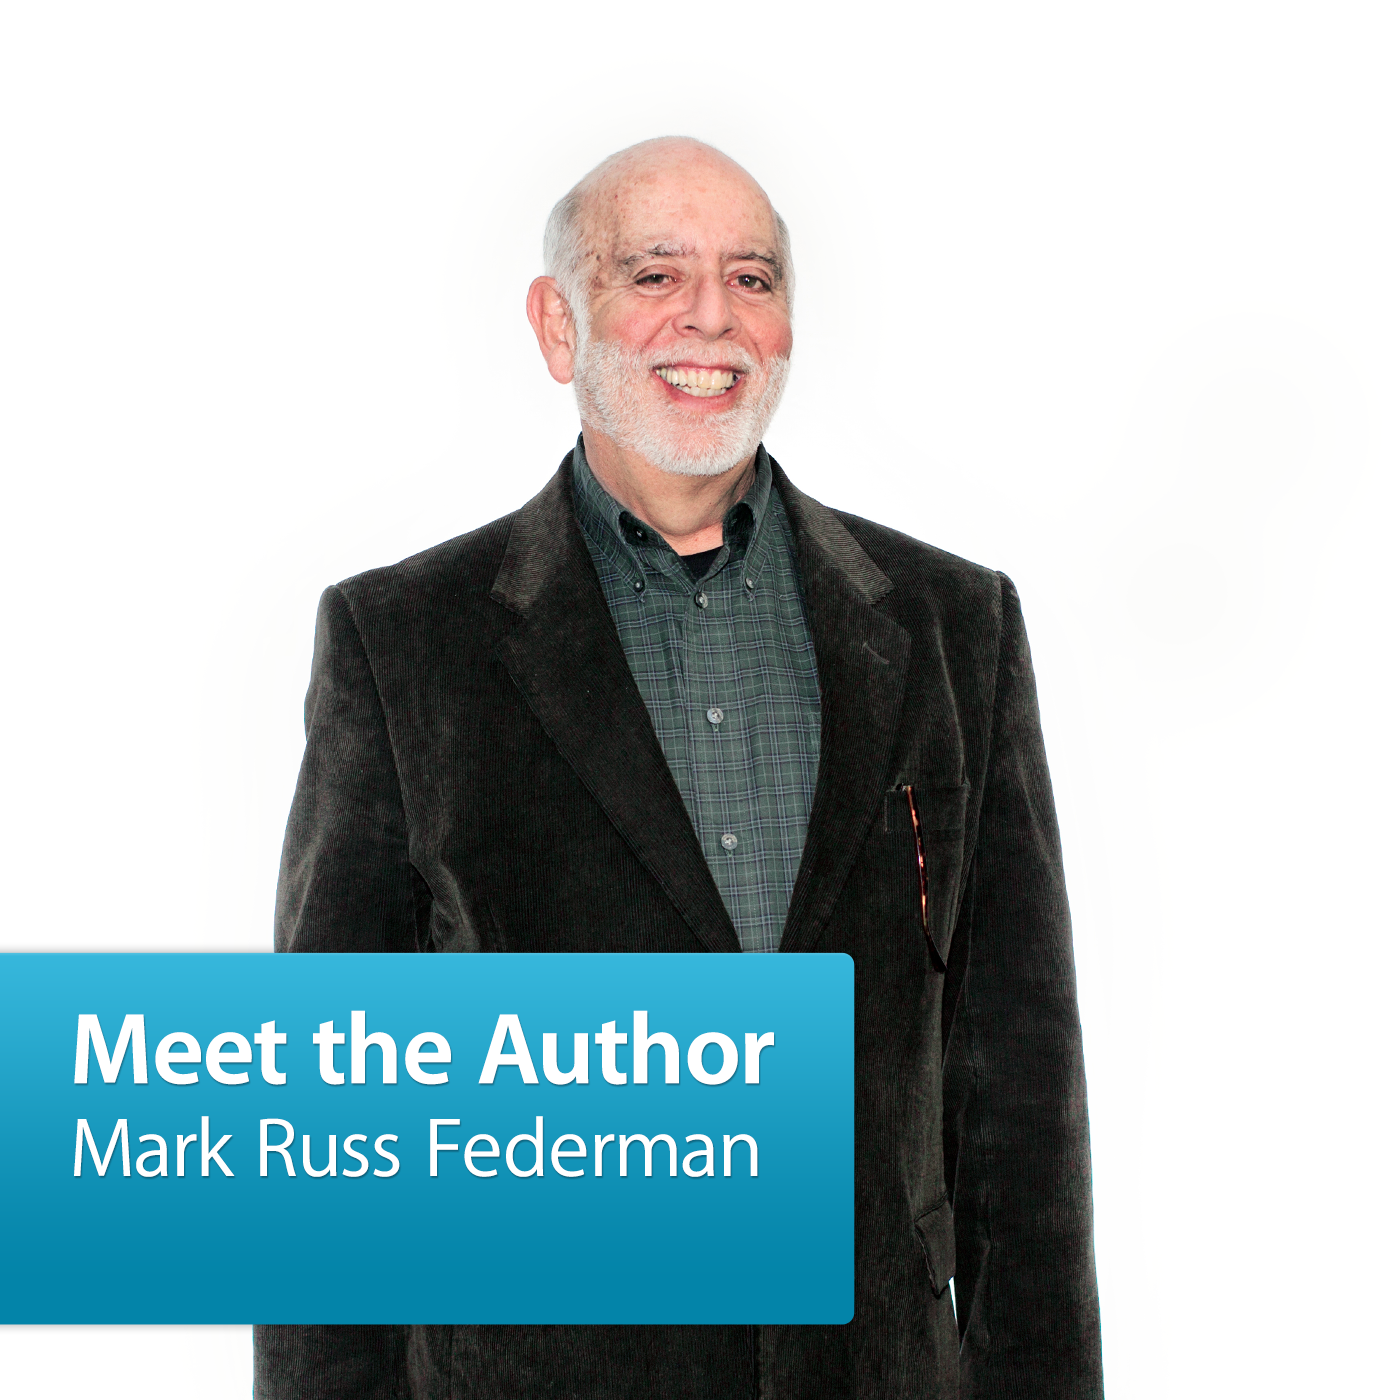 Mark Russ Federman: Meet the Author